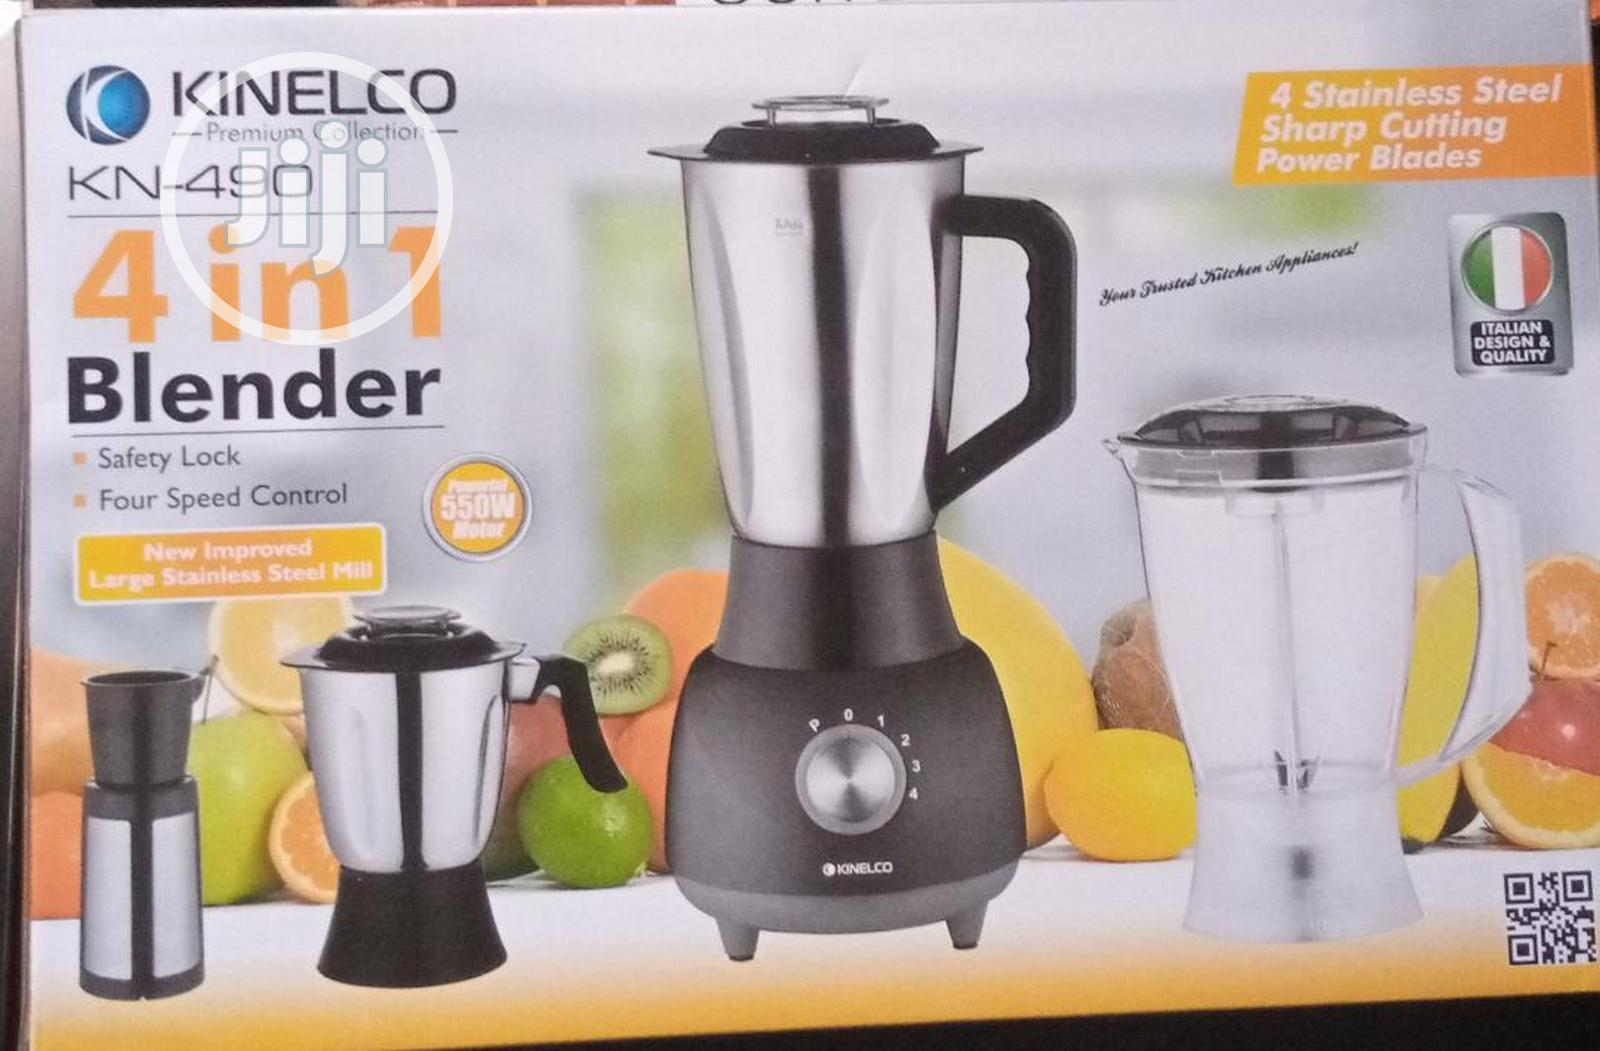 Kinelco 4 in 1 Blender